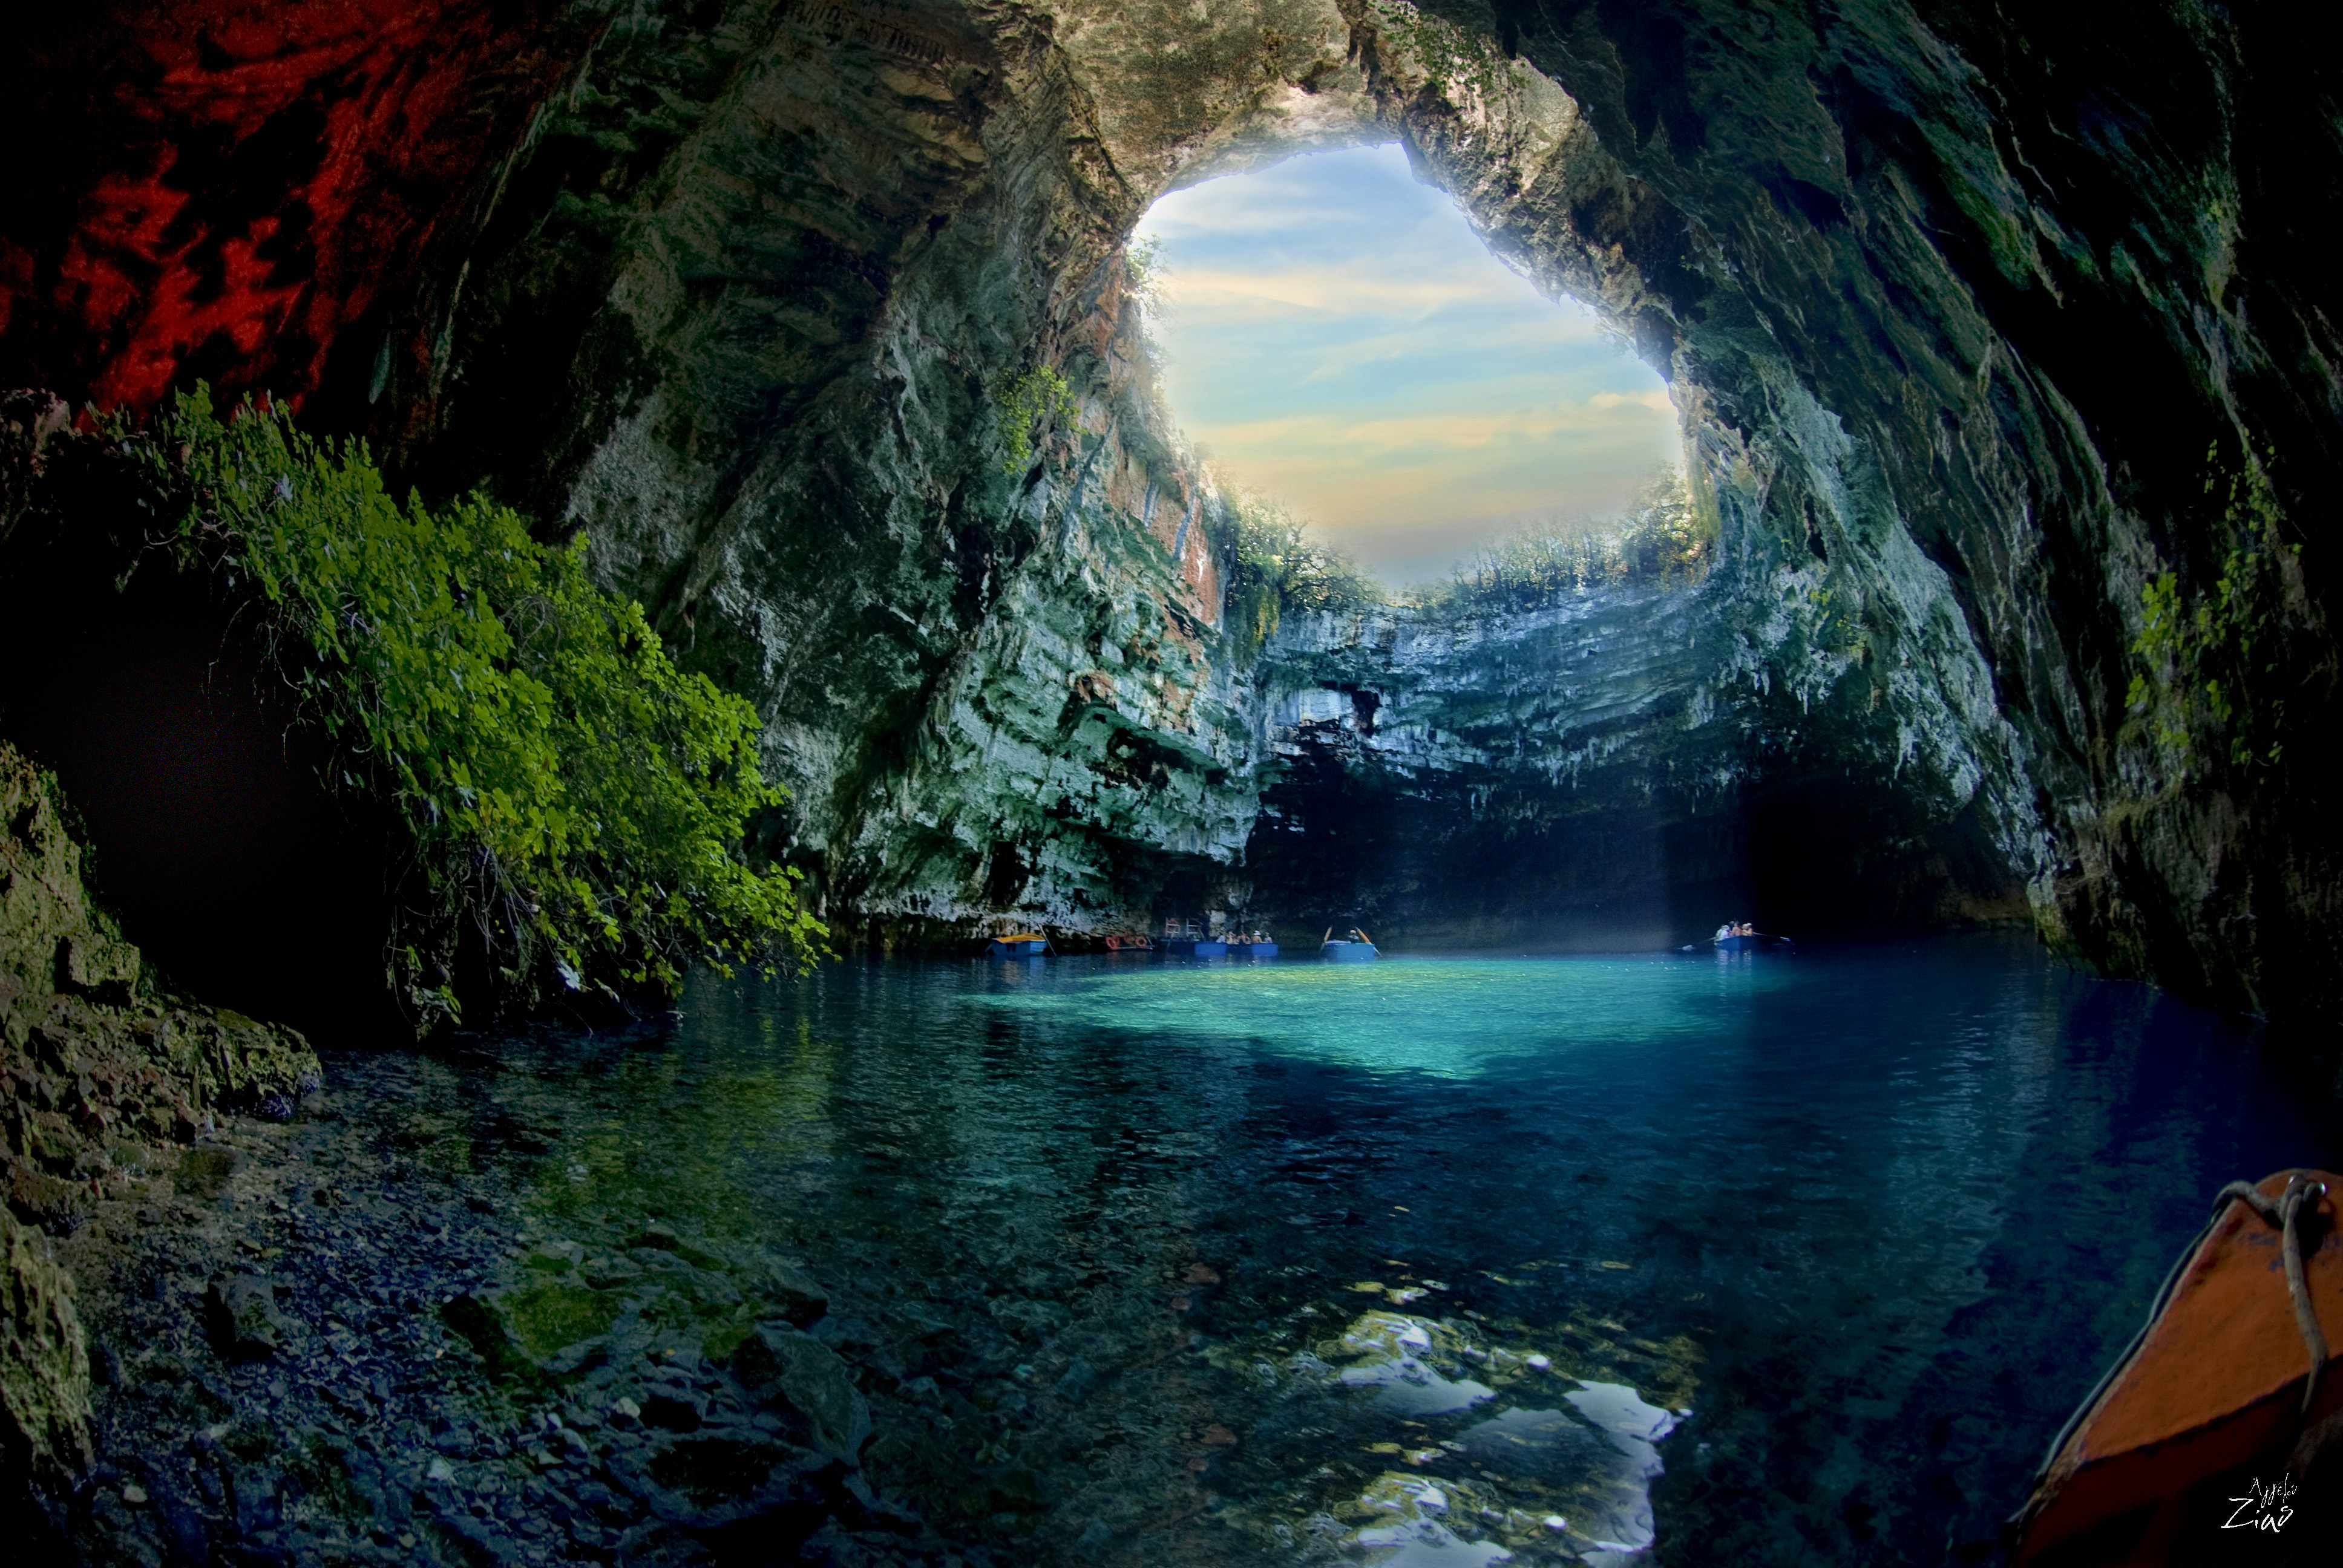 Wallpaper Cave: Melissani Cave In Greece 4k Ultra HD Wallpaper